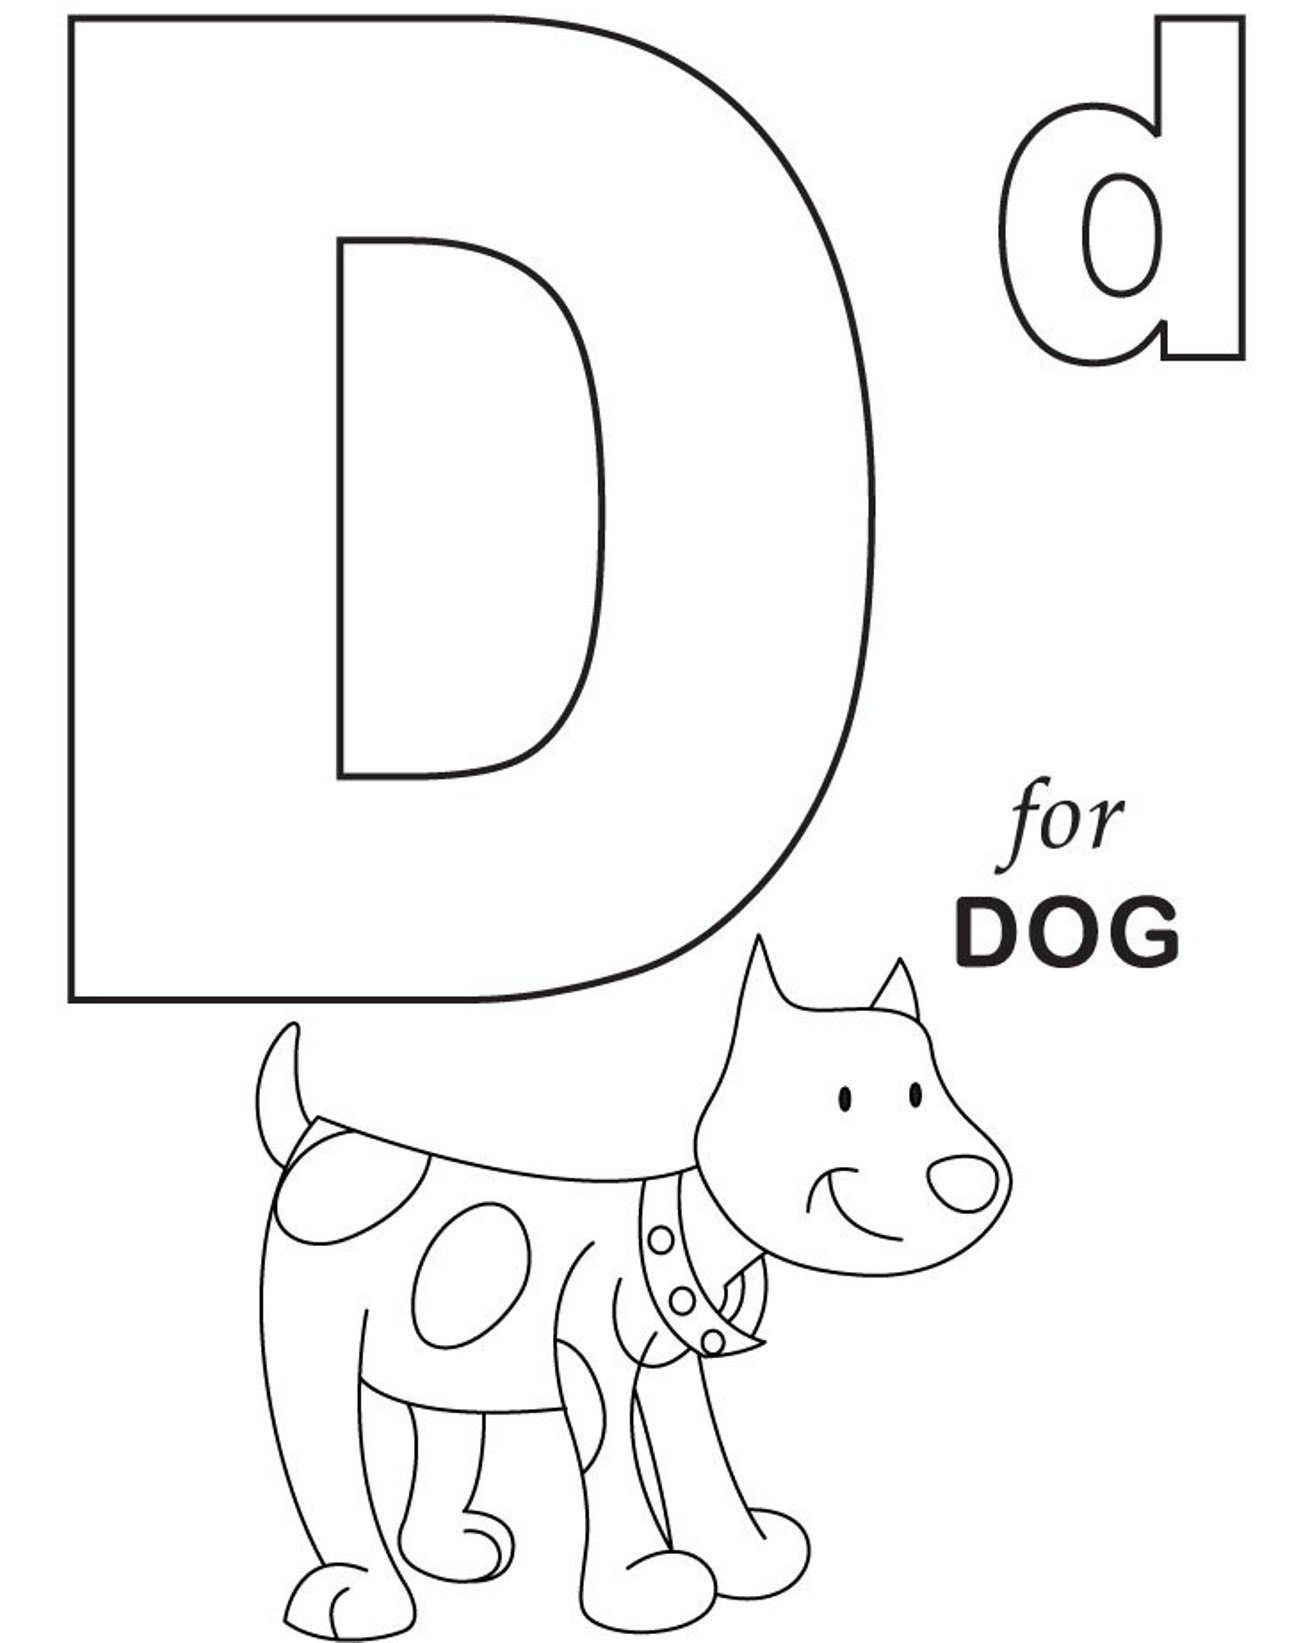 Alphabet Coloring, D For Dog Printable Alphabet Coloring Pages: D - Free Printable Alphabet Coloring Pages